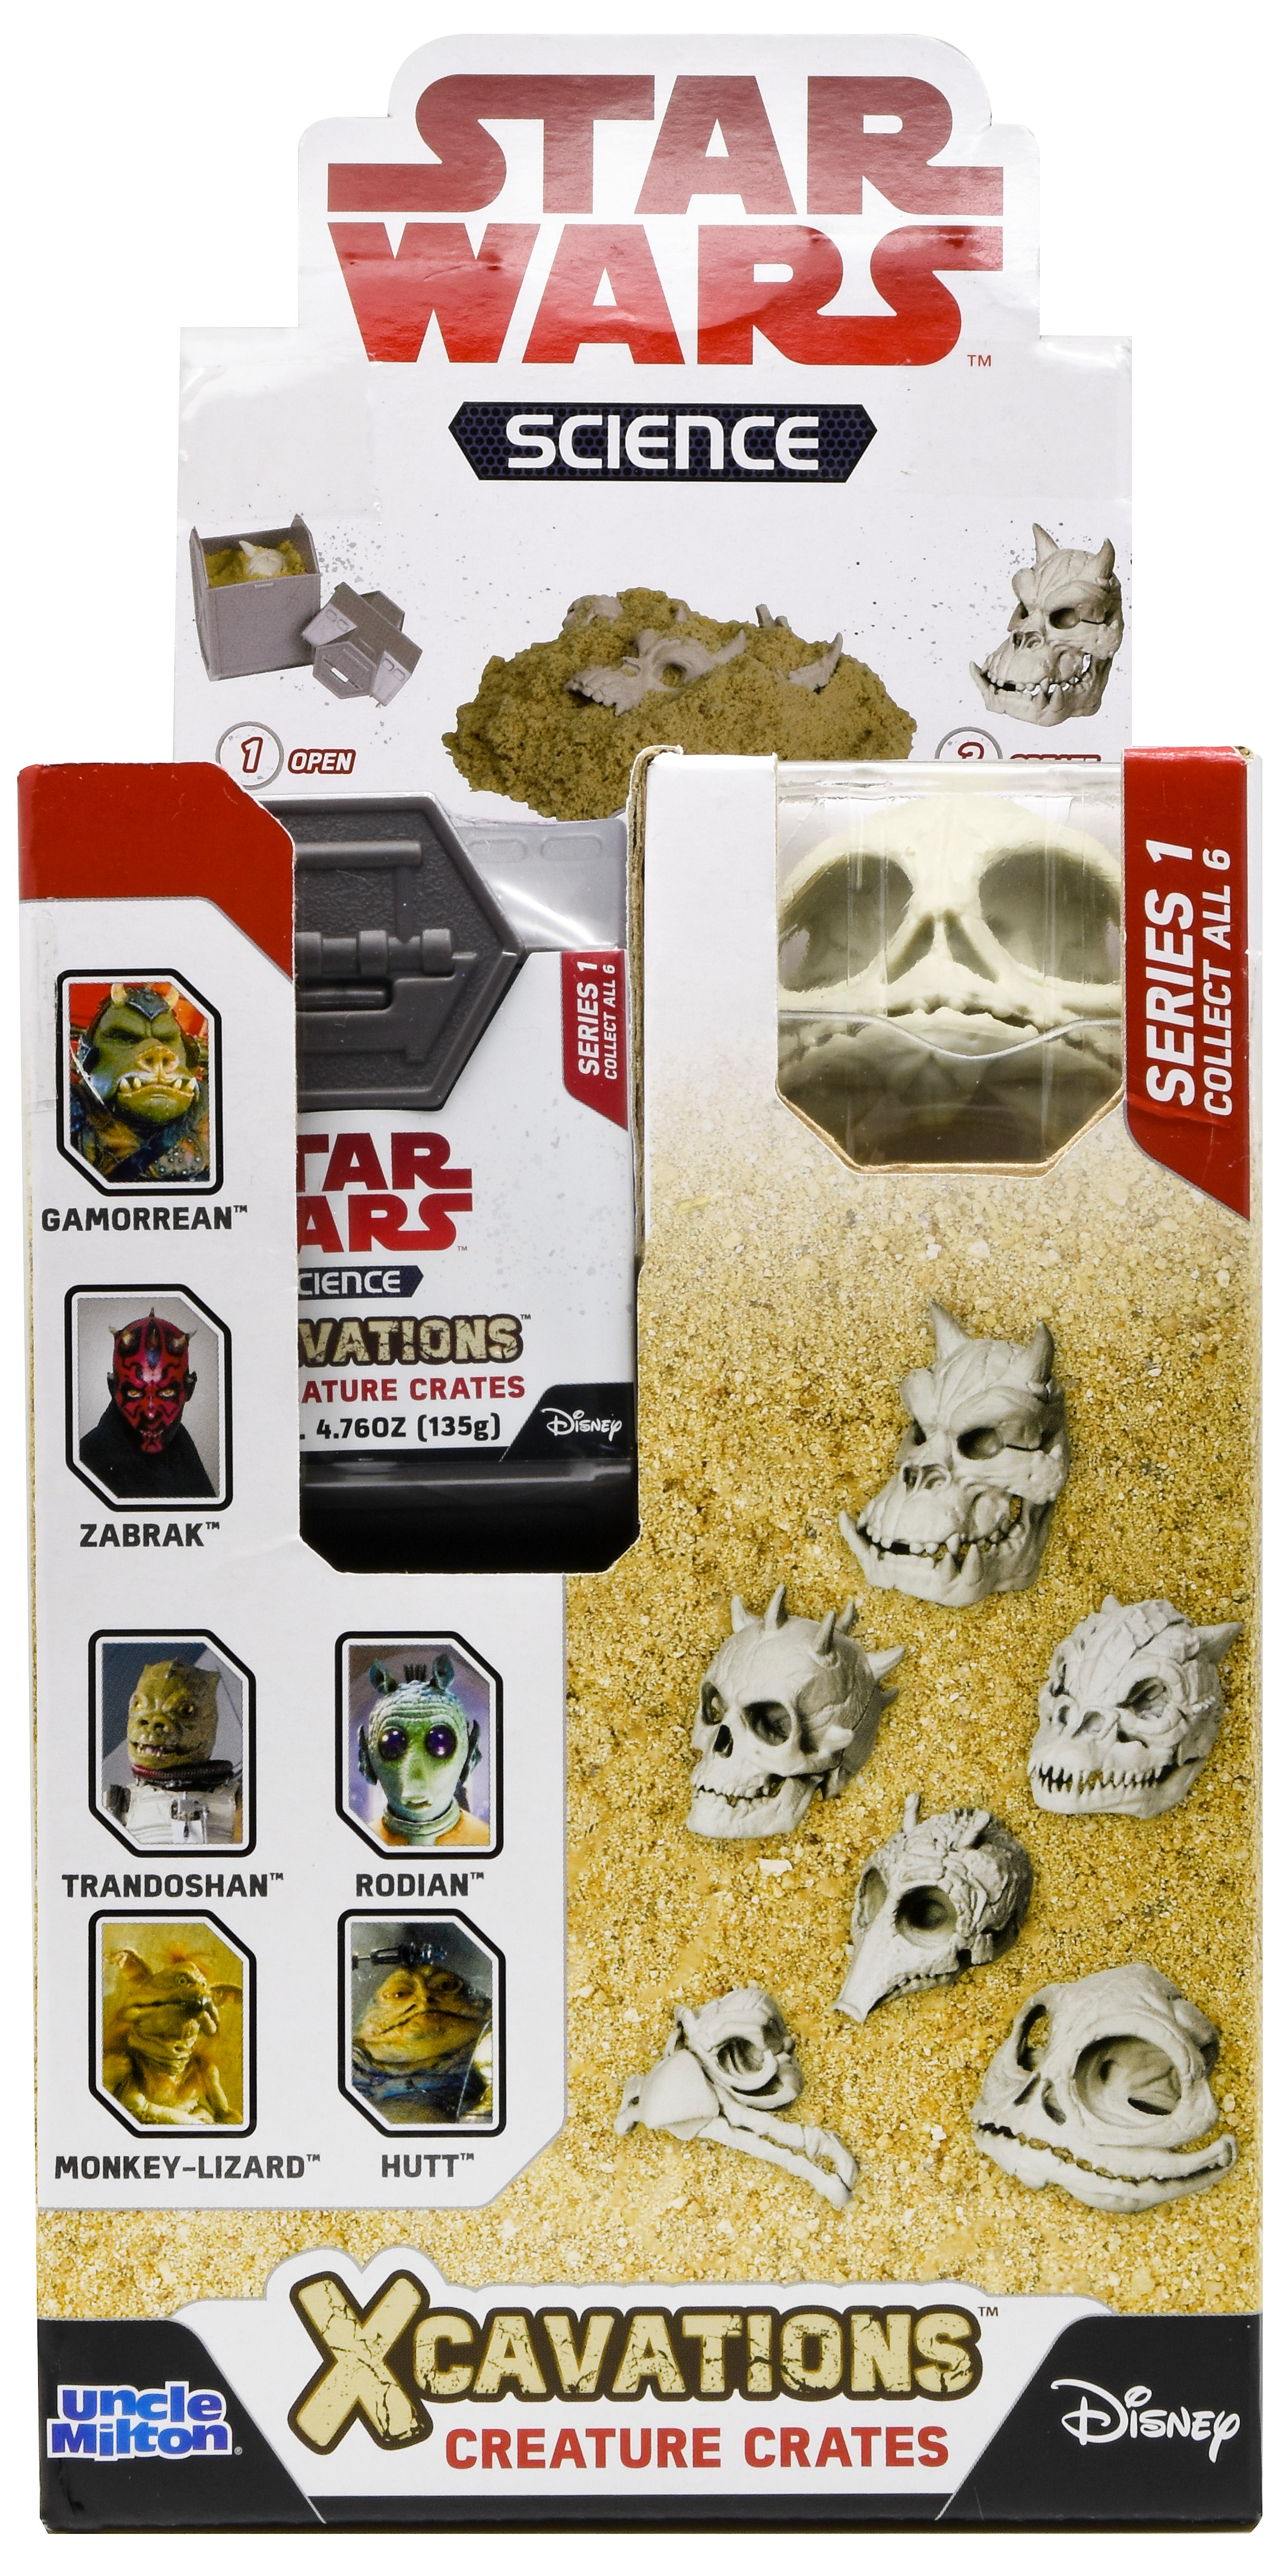 Star Wars Science Xcavations Creature Crates